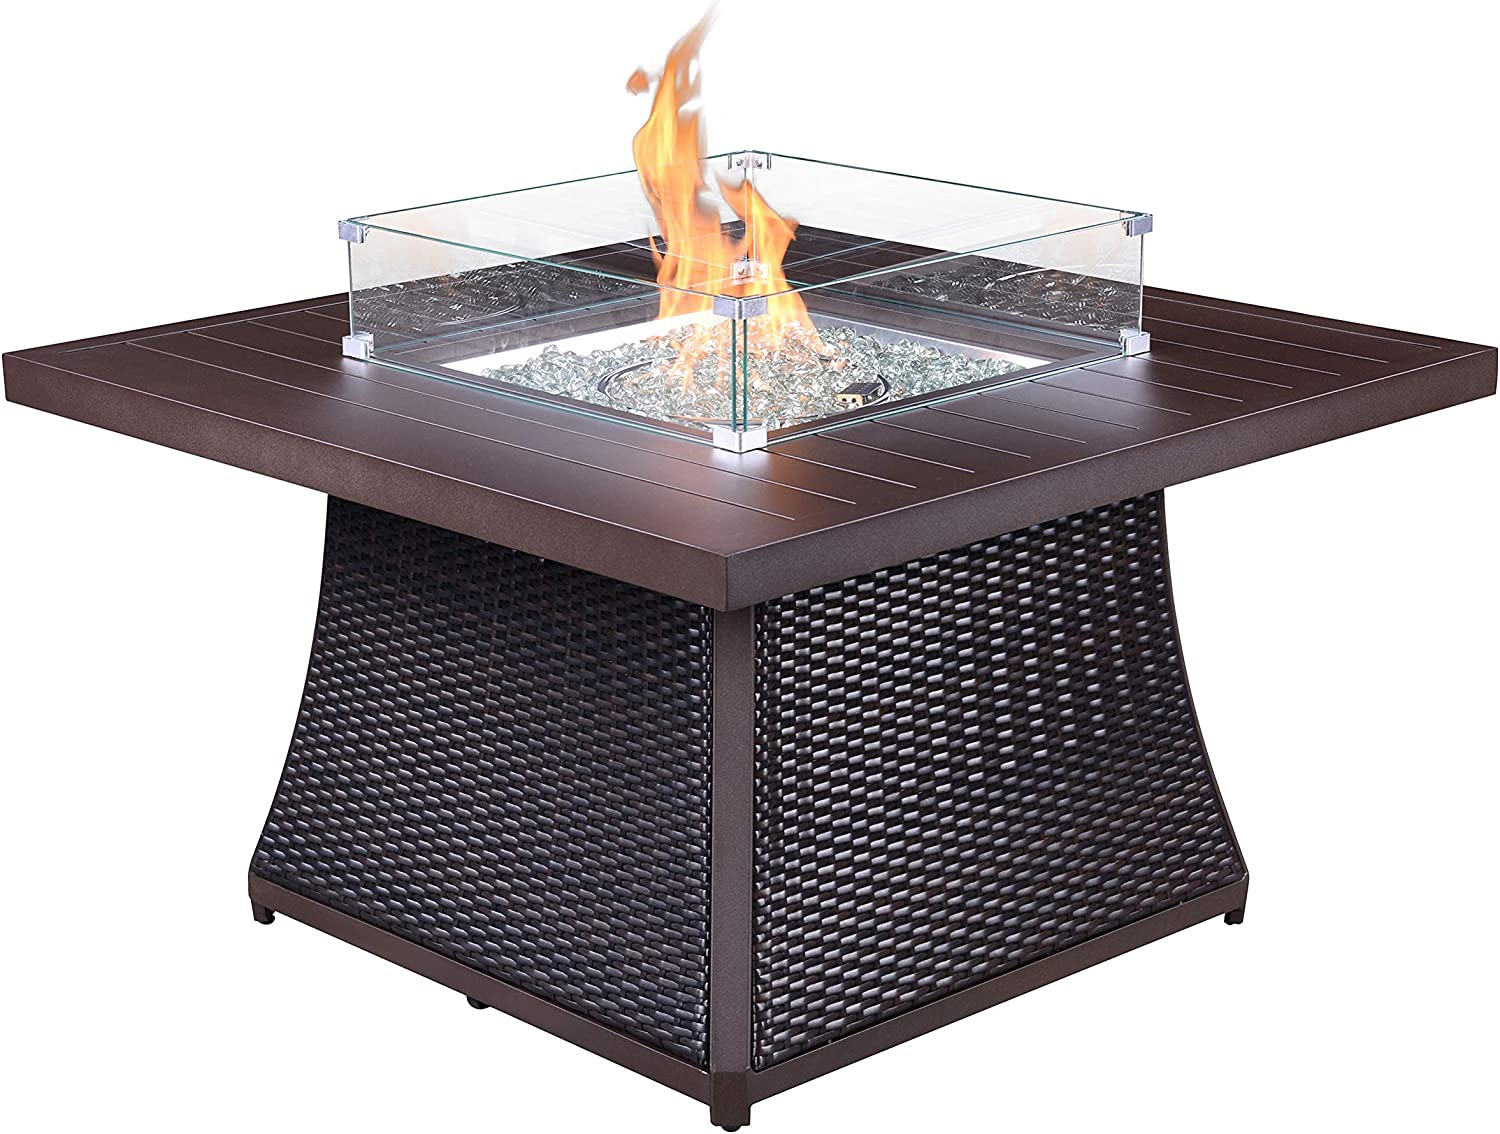 Kinger Home Propane Fire Pit Table, 50,000 BTU, 42 Inch Aluminum Rattan Wicker Fire Table, Outdoor Fire Pit Gas Propane, Slide Out Tank Holder with Glass Wind Guard, Glass Beads, Cover, and Lid, Brown